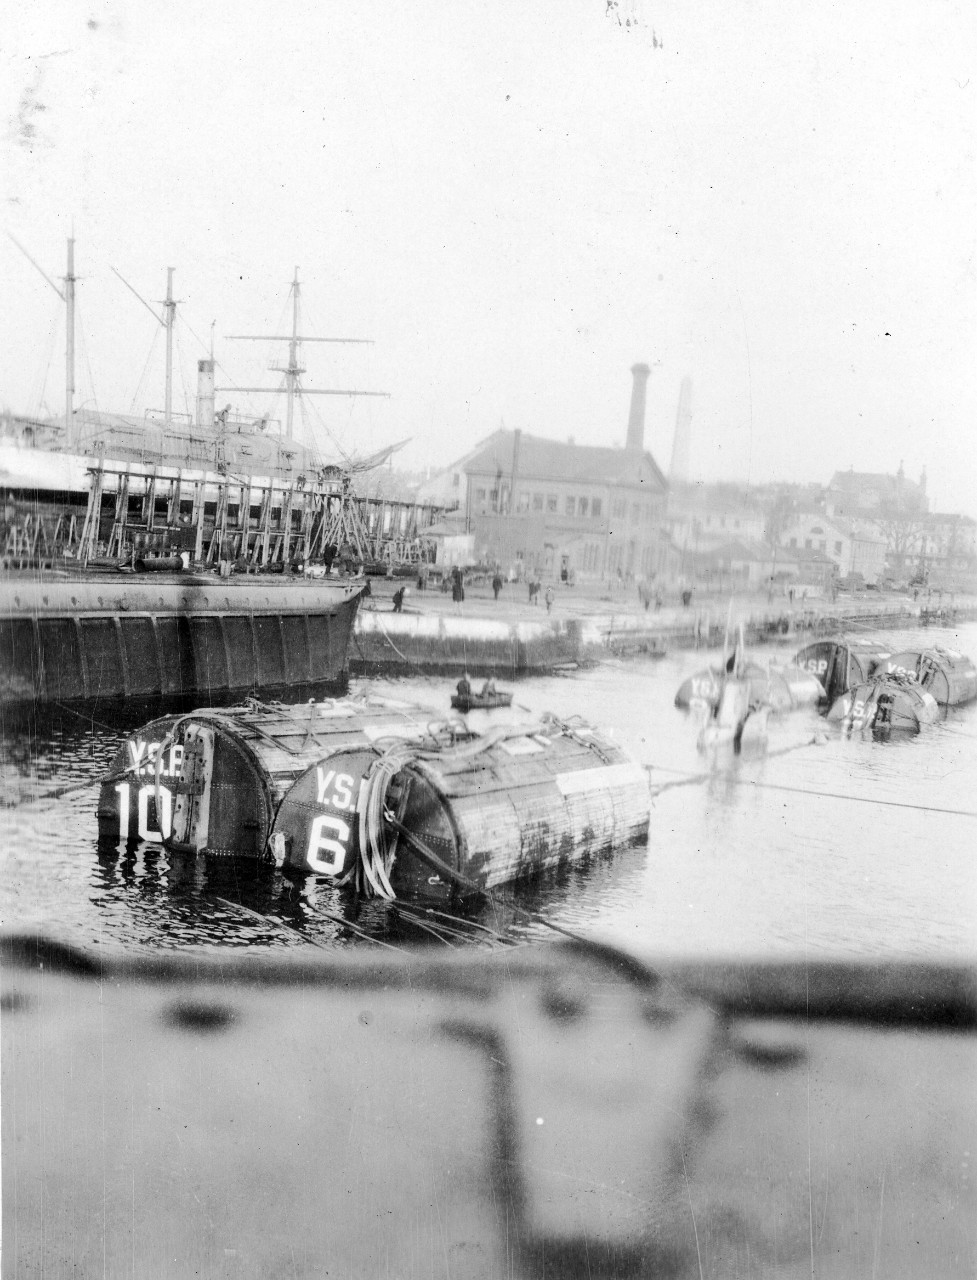 Pontoons used in salvage operation of S-4, March 1928.